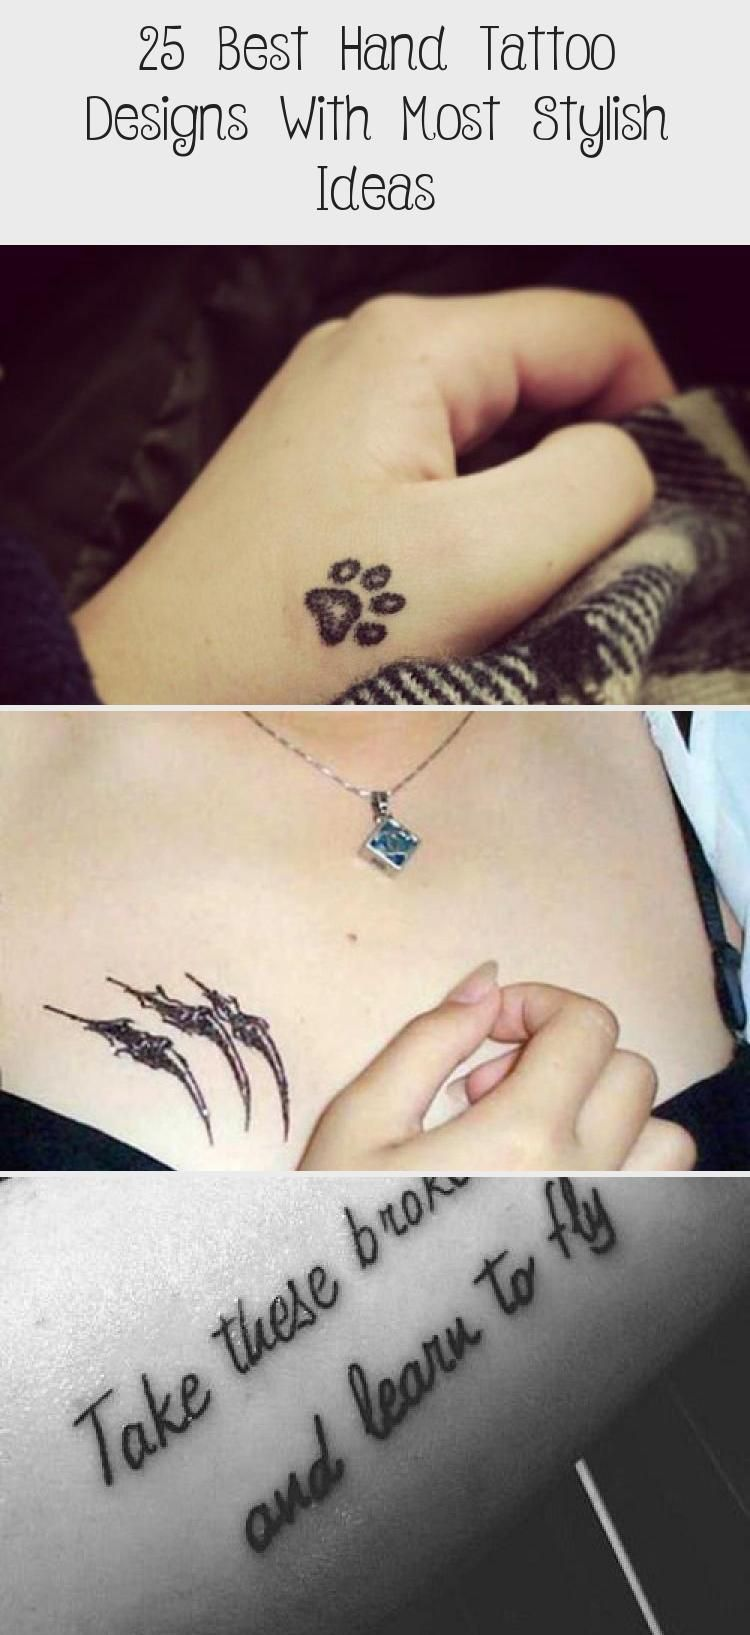 25 Best Meaningful Hand Tattoo Designs For Men And Women Geometrictattoodesigns 25 Best Meaningful Ha In 2020 Cute Hand Tattoos Hand Tattoos Simple Hand Tattoos